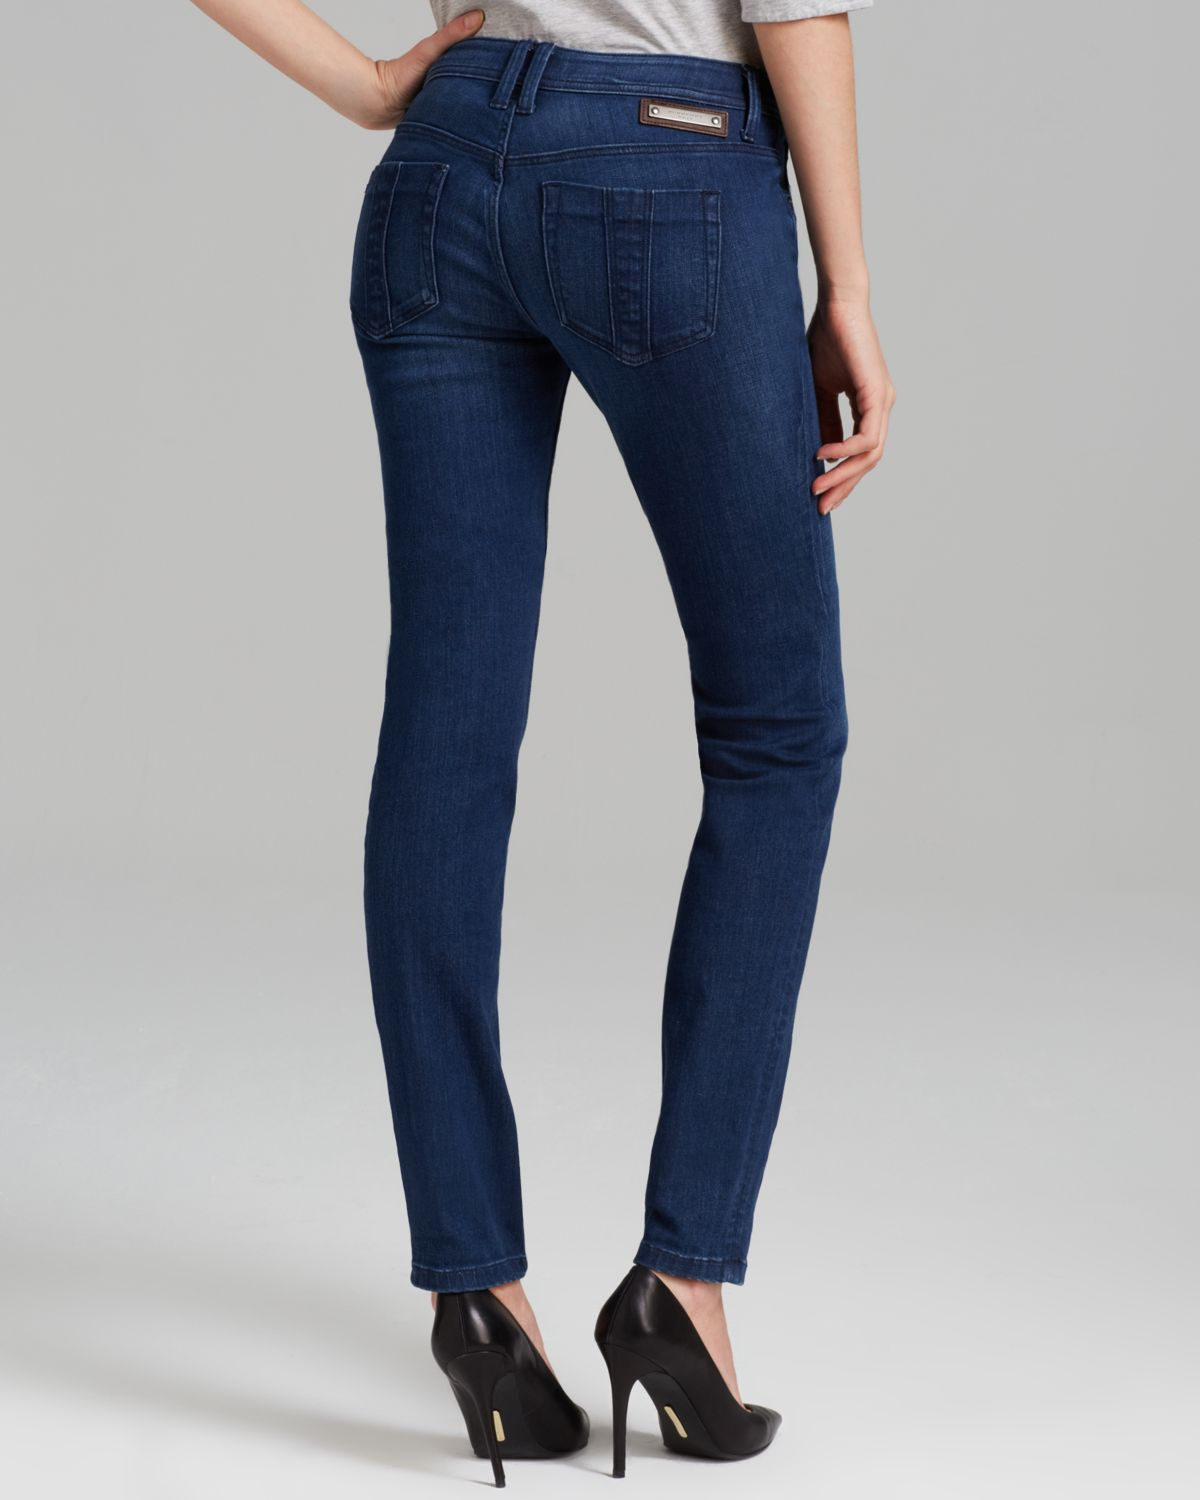 Lyst Burberry Brit Kensington Jeans In Denim Blue In Blue